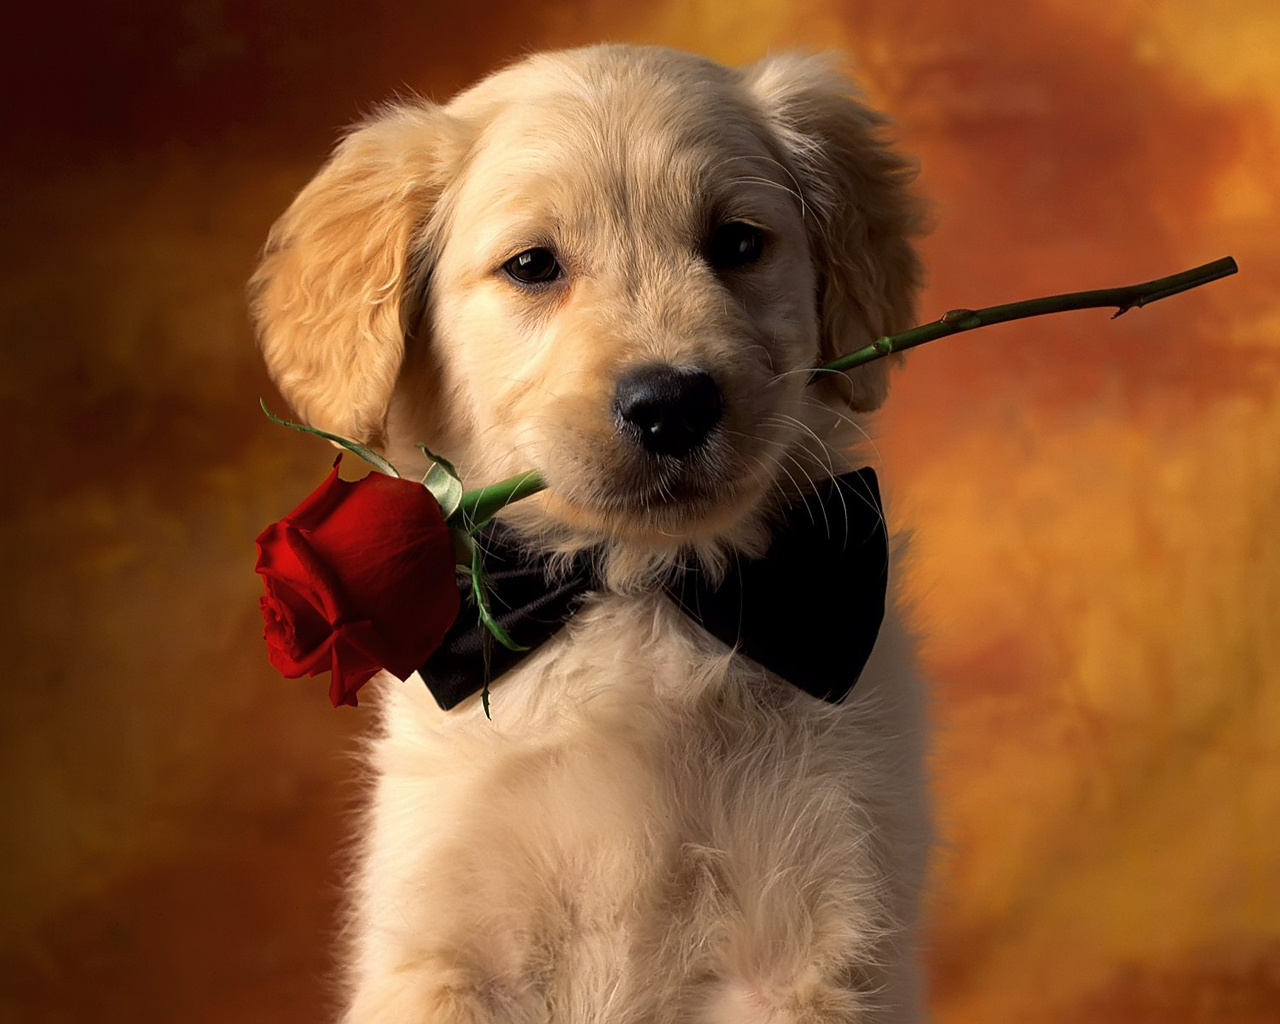 cute dog with rose